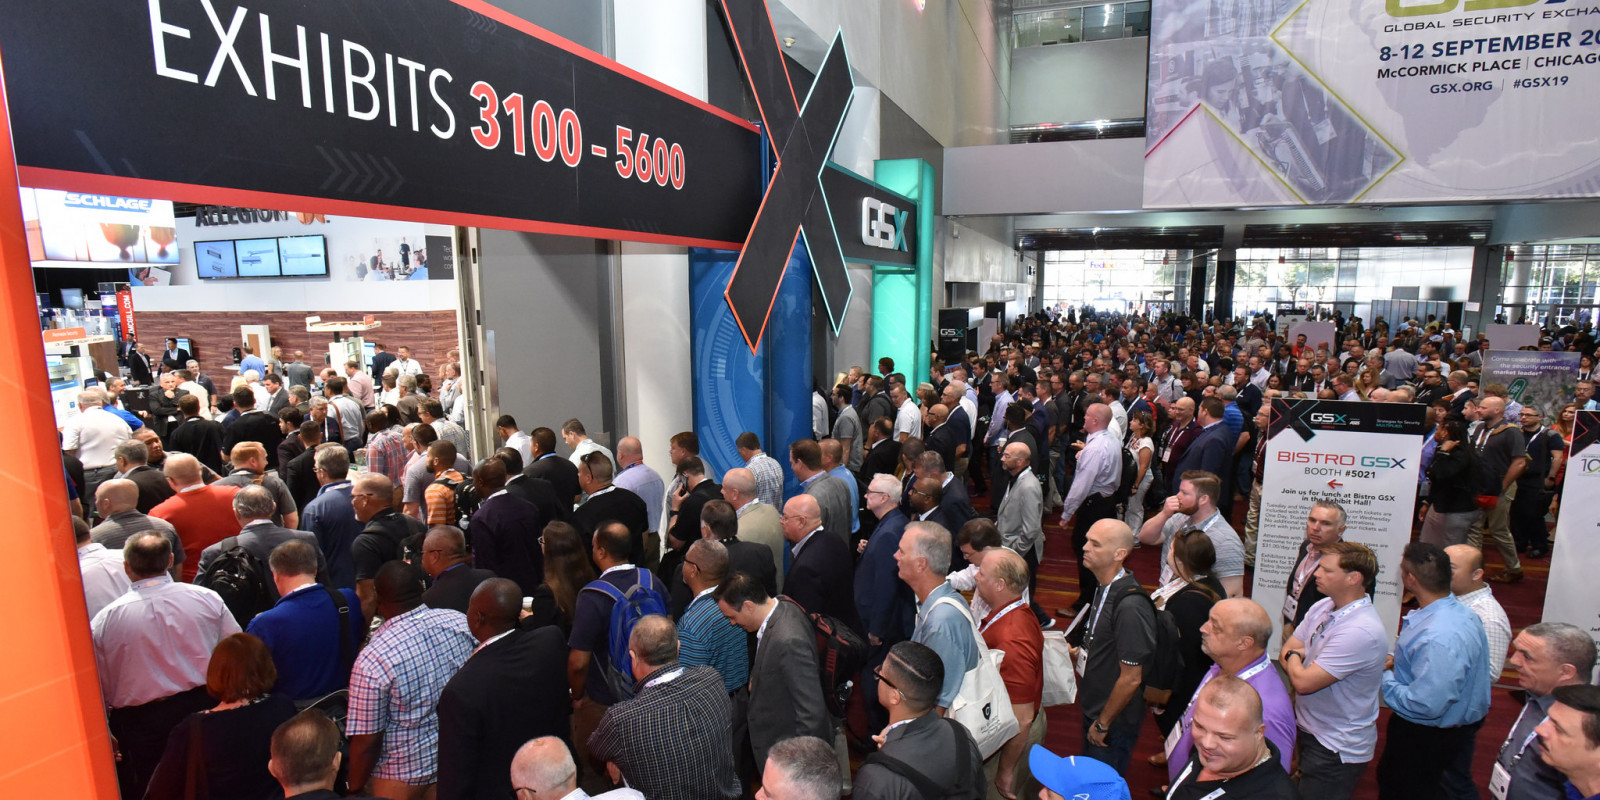 Packed Exhibit Hall